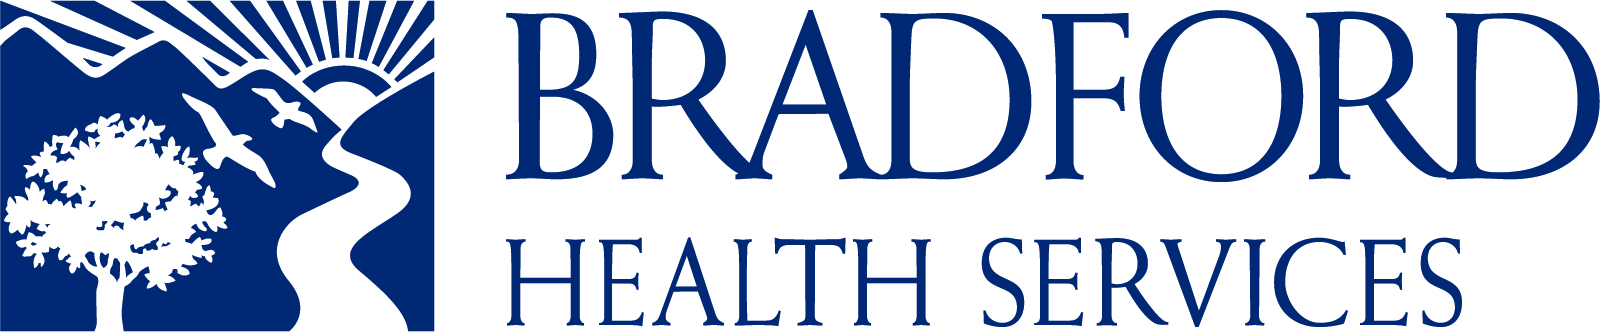 BradfordHealthServicesLogo_Revised Blue LeftAligned.jpeg